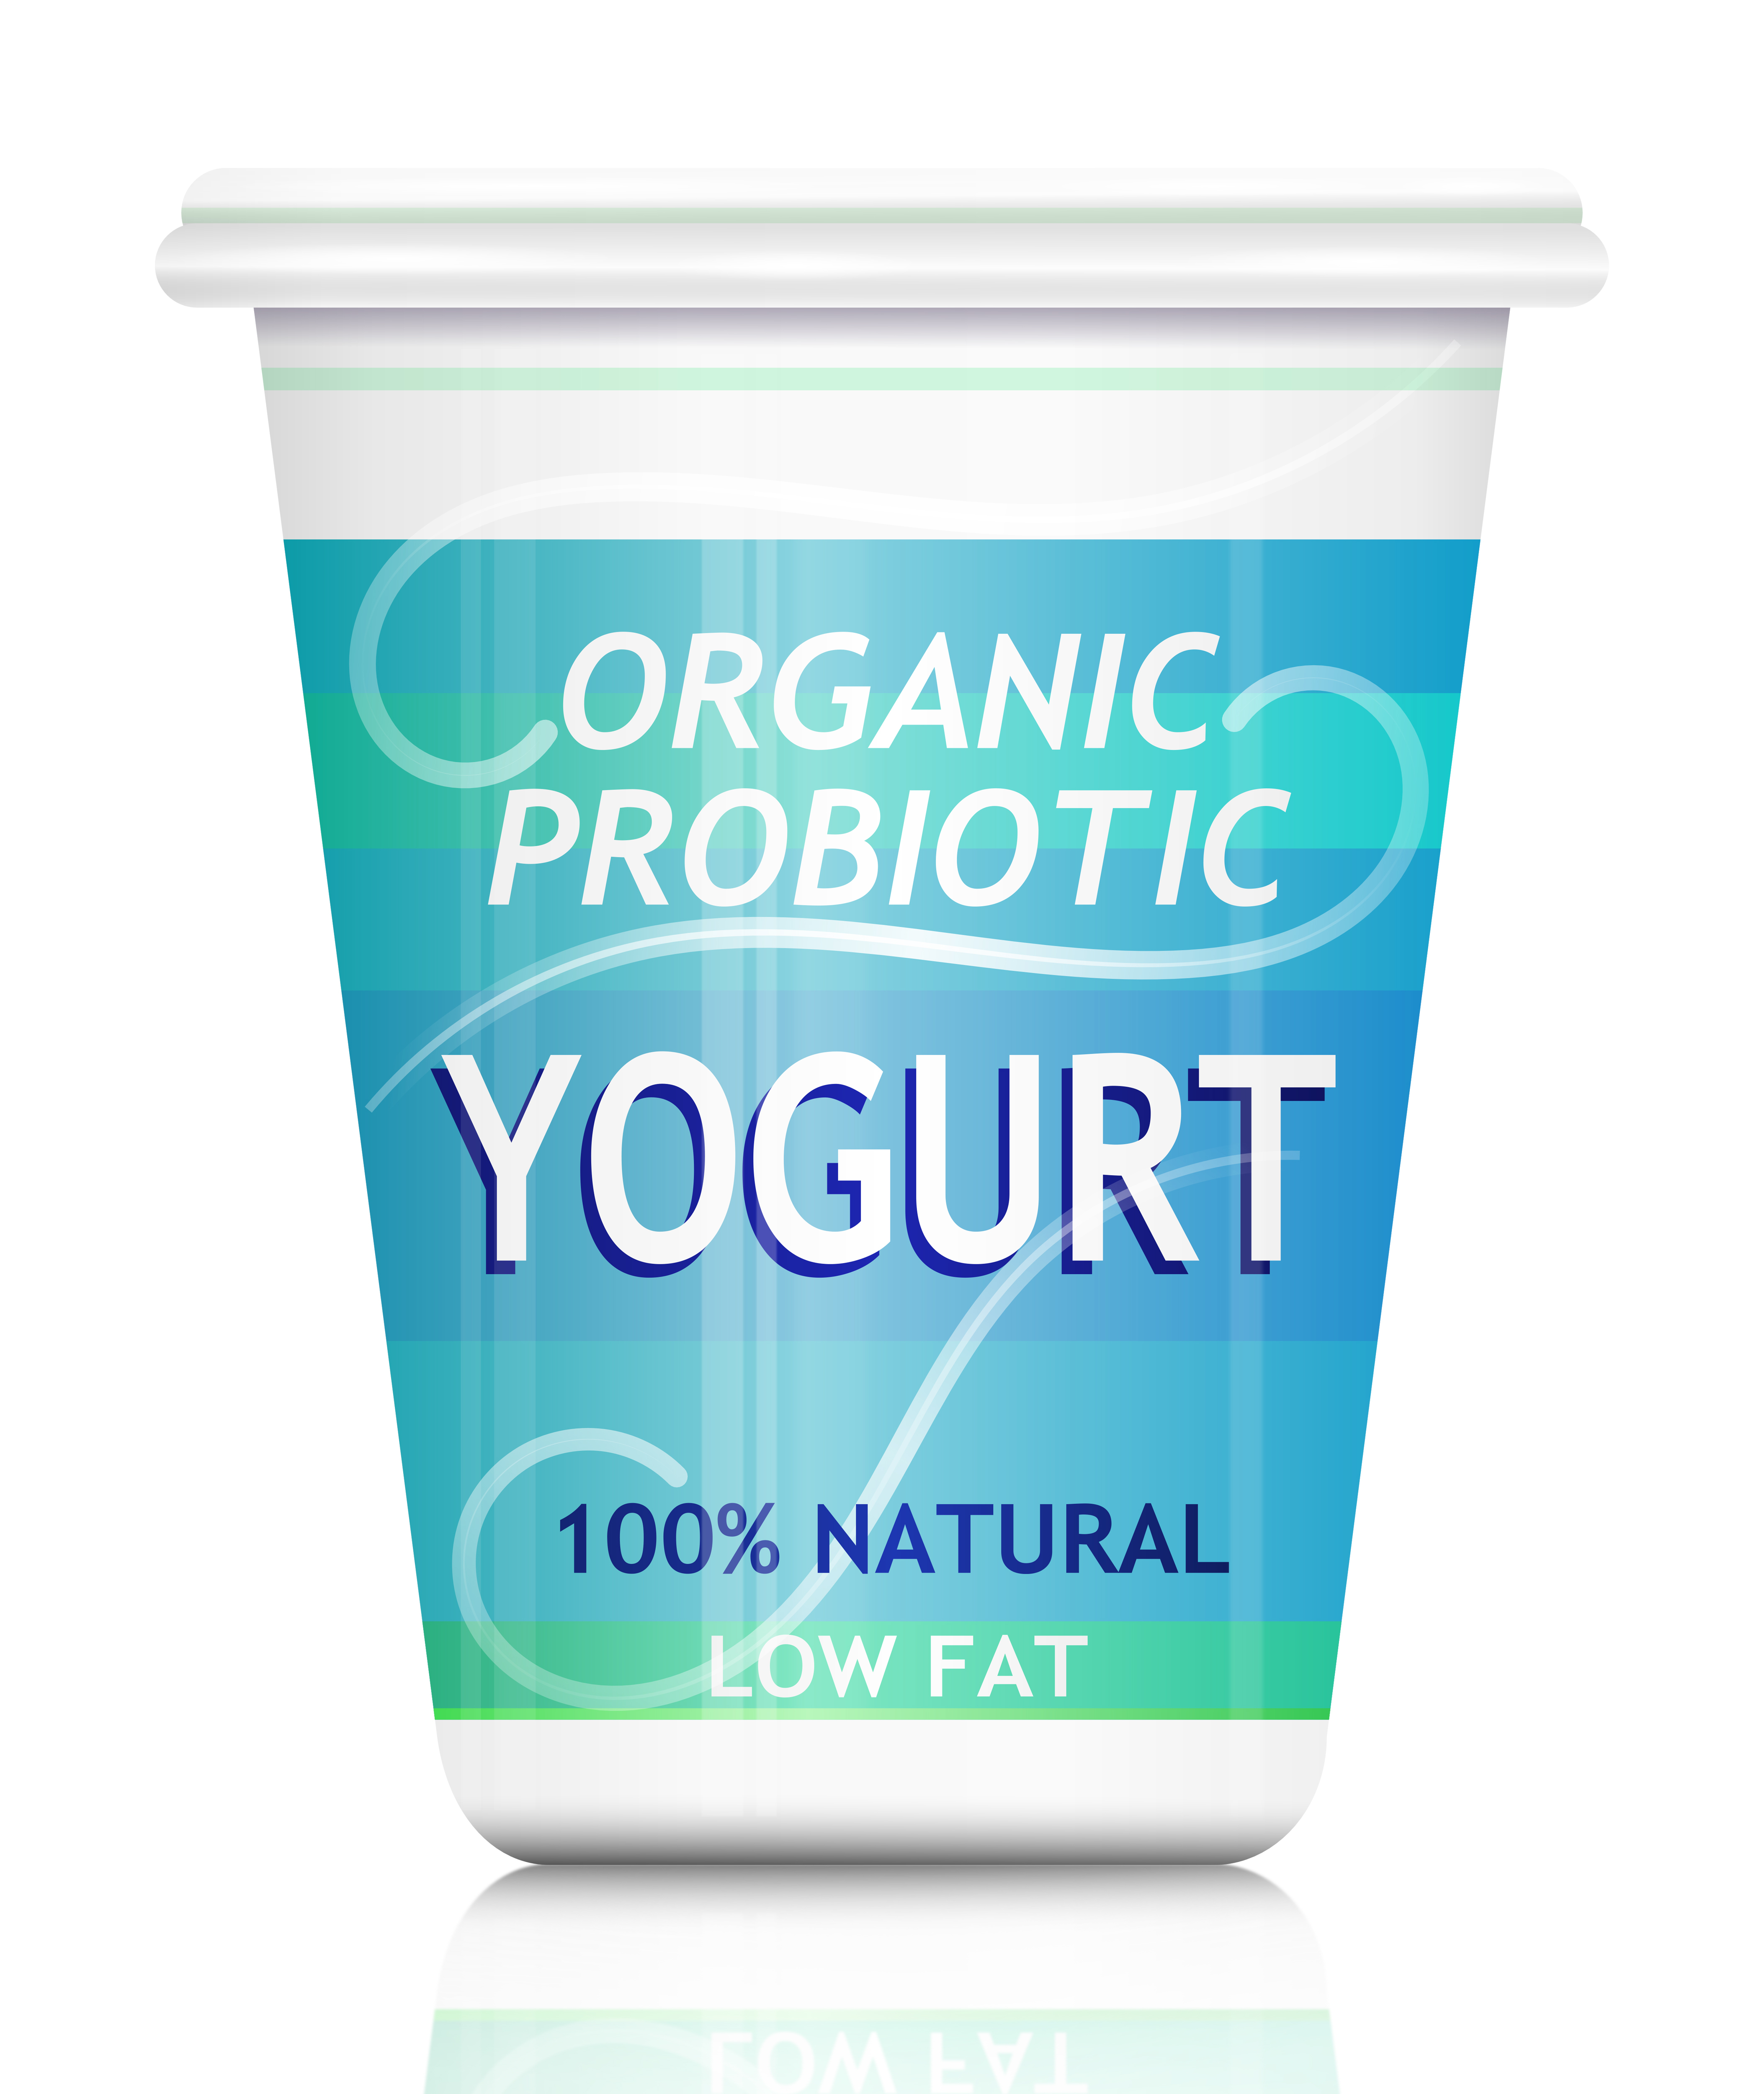 Tuesday Q Amp A Probiotics May Have Health Benefits But